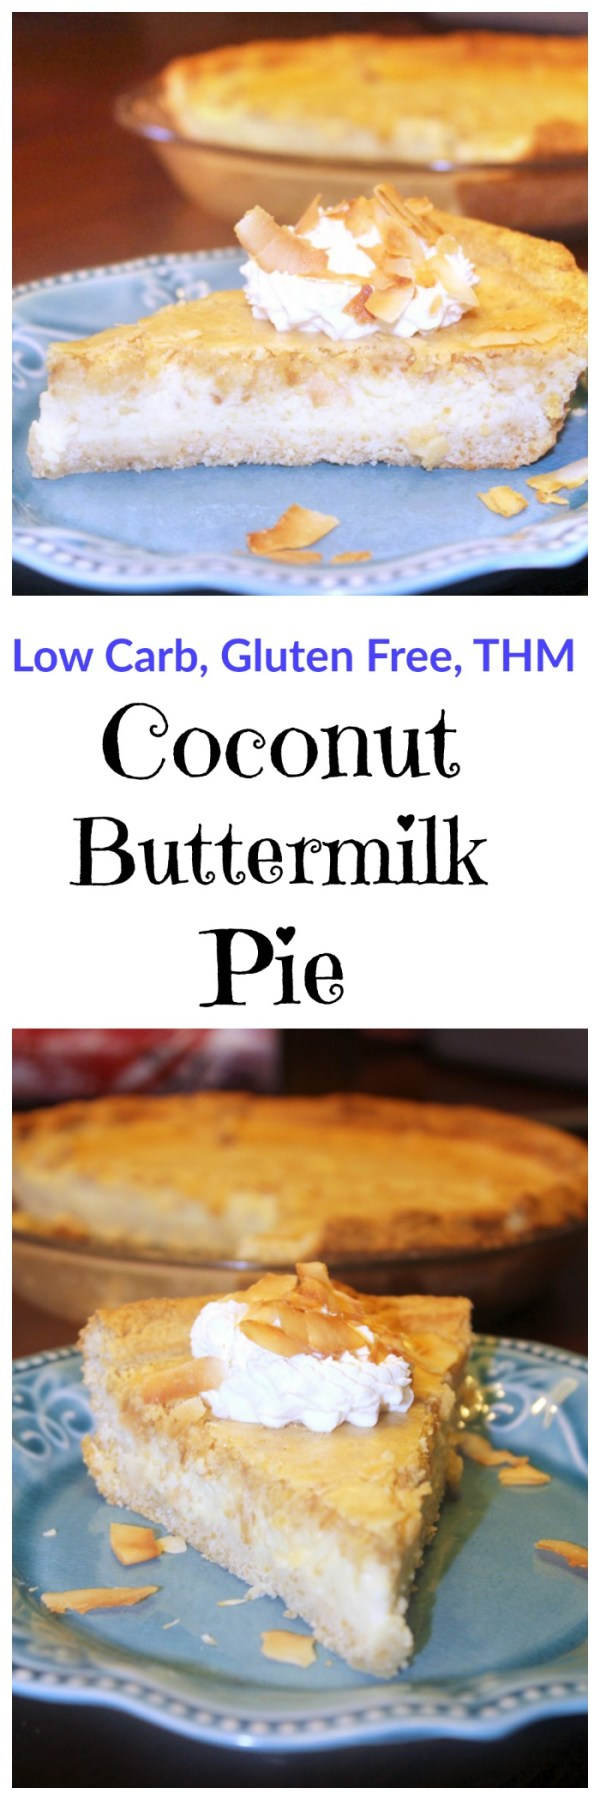 A coconut twist on a classic buttermilk pie. Low carb and gluten free.